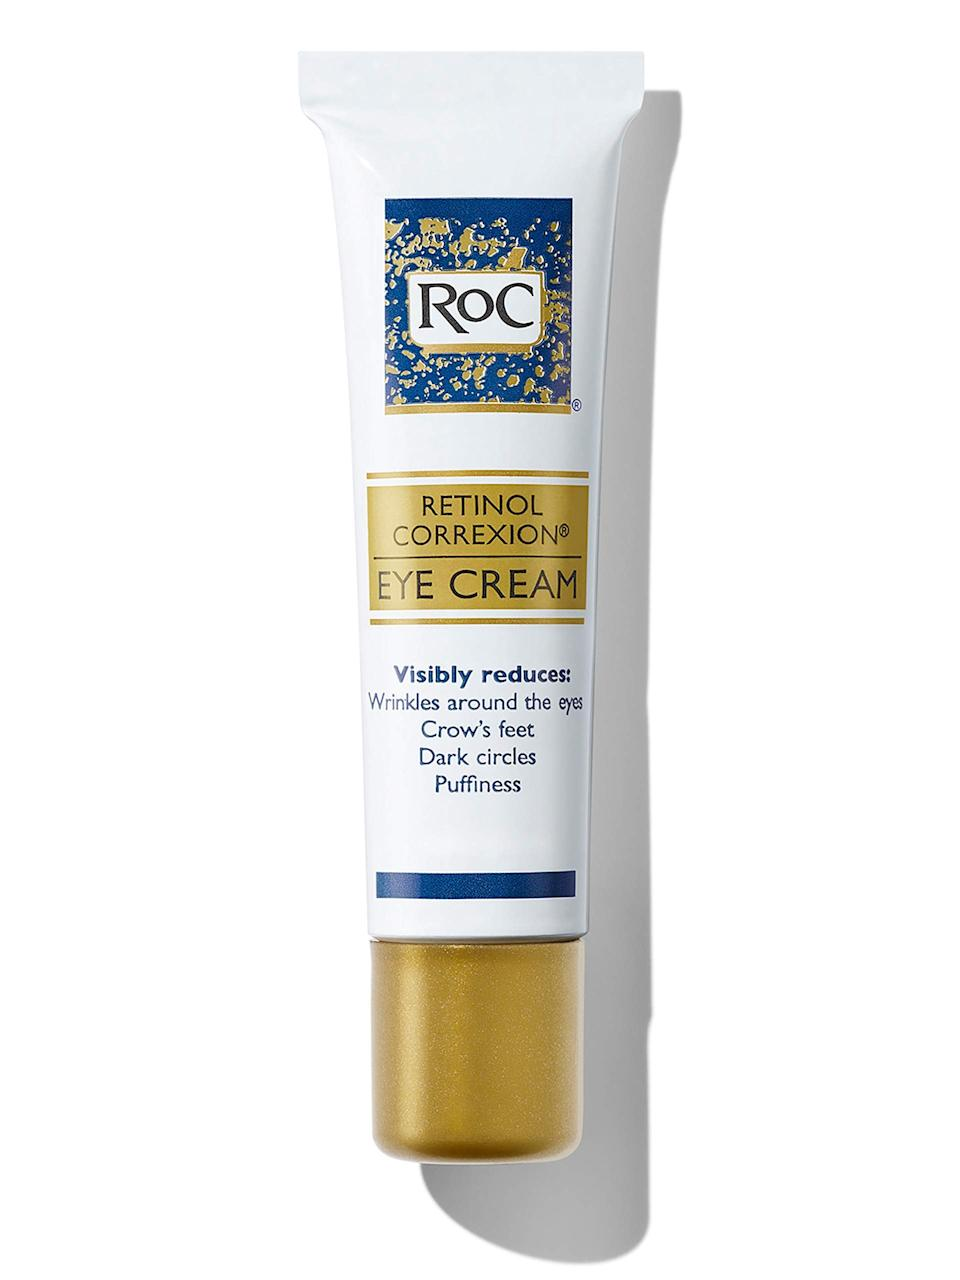 """<h3>RoC Retinol Correxion Anti-Aging Eye Cream Treatment</h3><br><strong>Ann</strong><br><br>""""I've been looking for a good product for puffiness and fine lines. This eye cream goes on smooth, is not sticky and absorbs very well. It's been about 8 weeks since my purchase, and I really love it. My morning puffiness has decreased, as well as crows feet. I'll definitely purchase again and want to try other retinol products in their line.""""<br><br><strong>RoC</strong> Retinol Correxion Anti-Aging Eye Cream Treatment, $, available at <a href=""""https://amzn.to/2NaZjCQ"""" rel=""""nofollow noopener"""" target=""""_blank"""" data-ylk=""""slk:Amazon"""" class=""""link rapid-noclick-resp"""">Amazon</a>"""